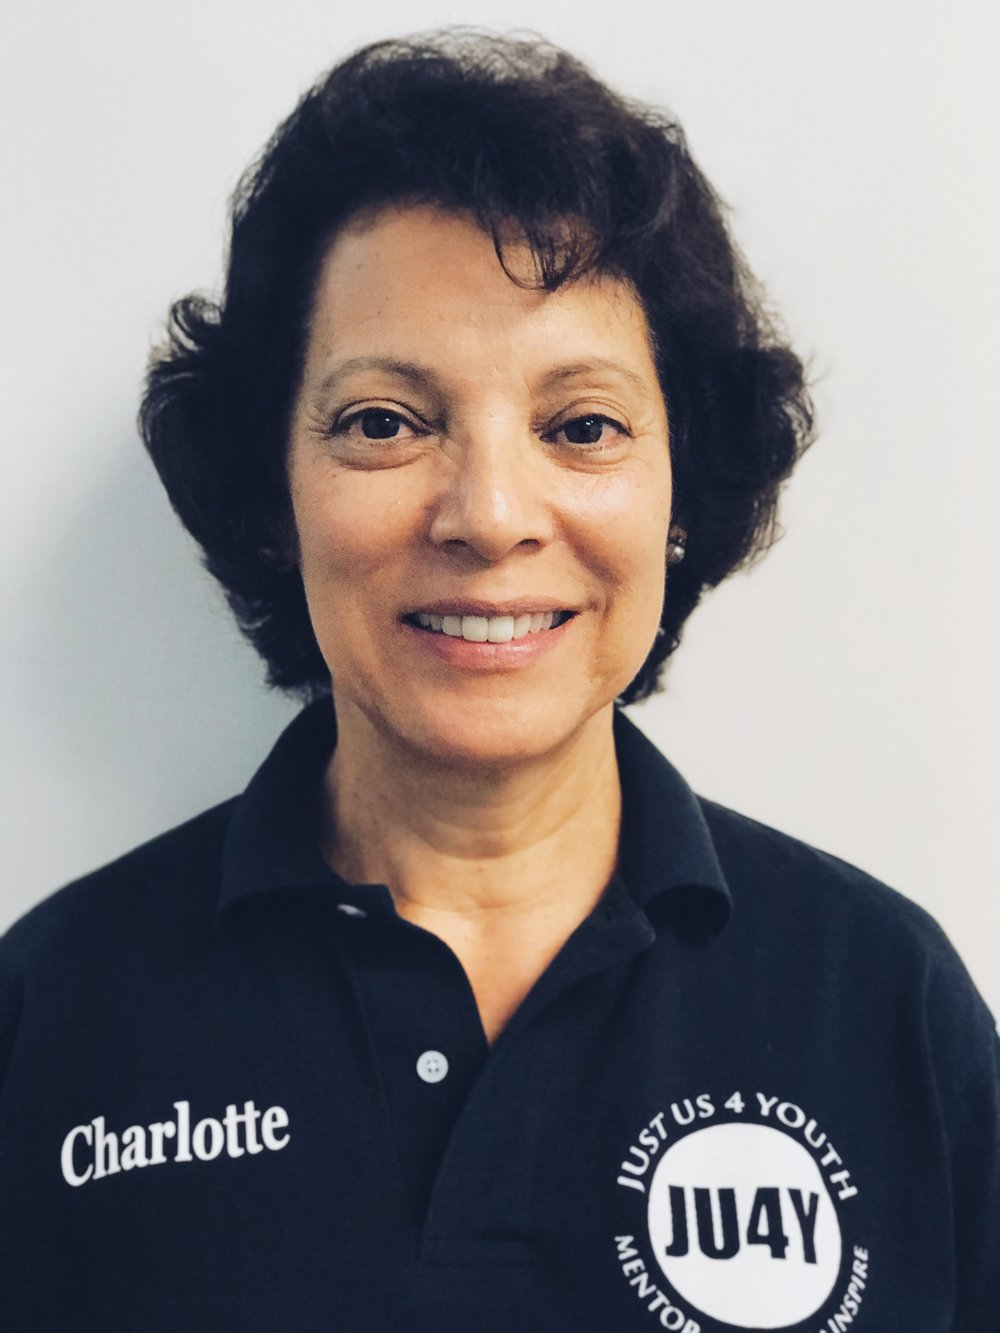 Charlotte Aguilar - Mentor / Human Resources